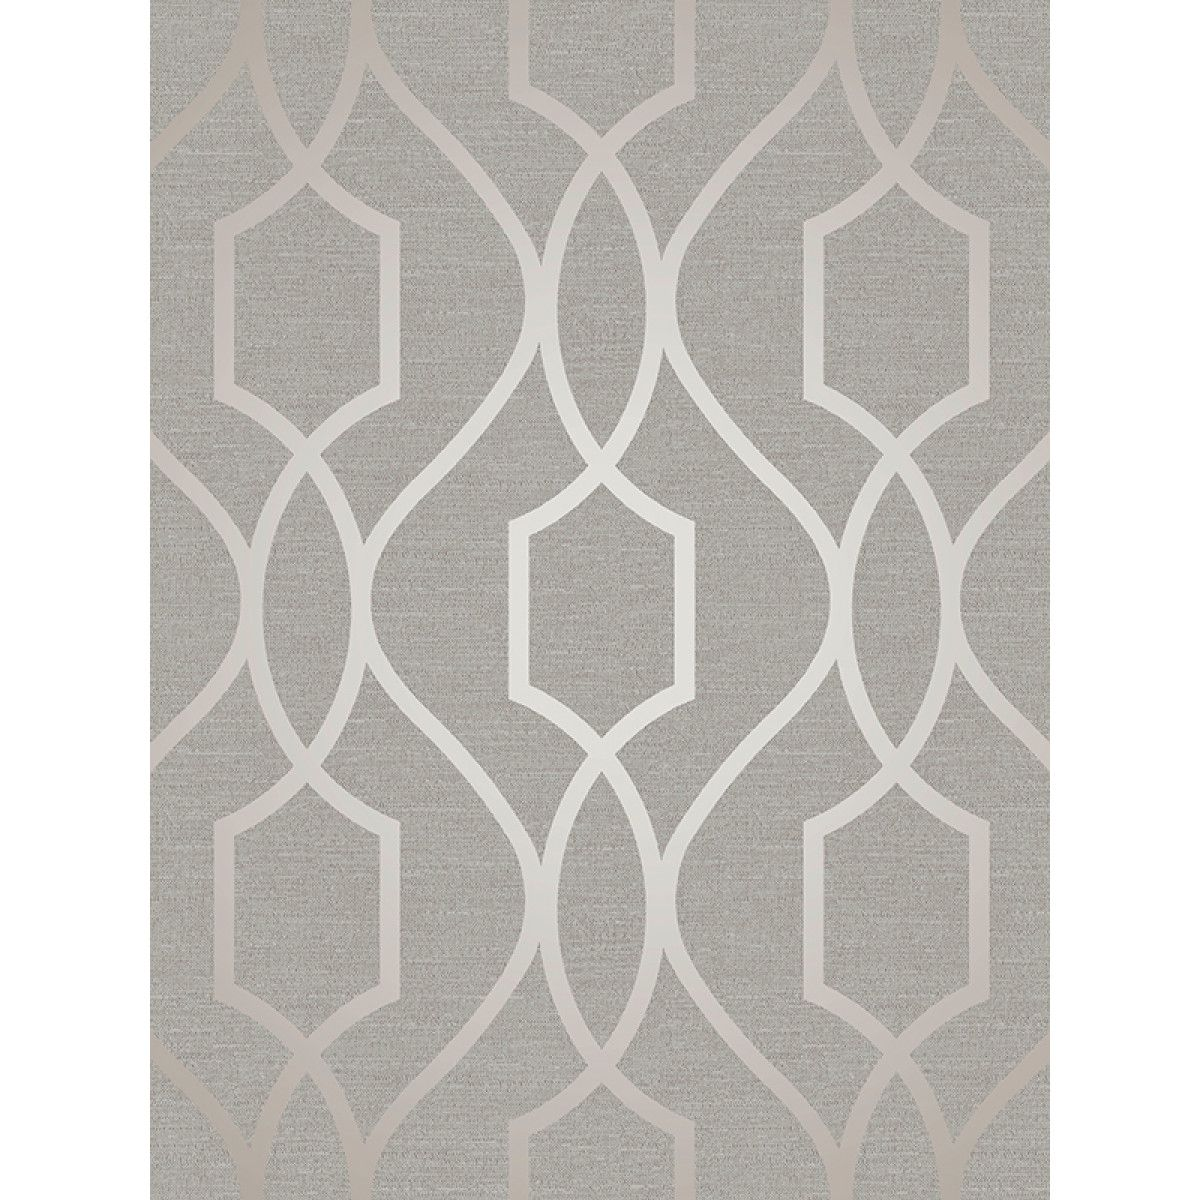 Apex Trellis Sidewall Wallpaper Copper: Apex Geometric Trellis Wallpaper Grey And Taupe Fine Decor